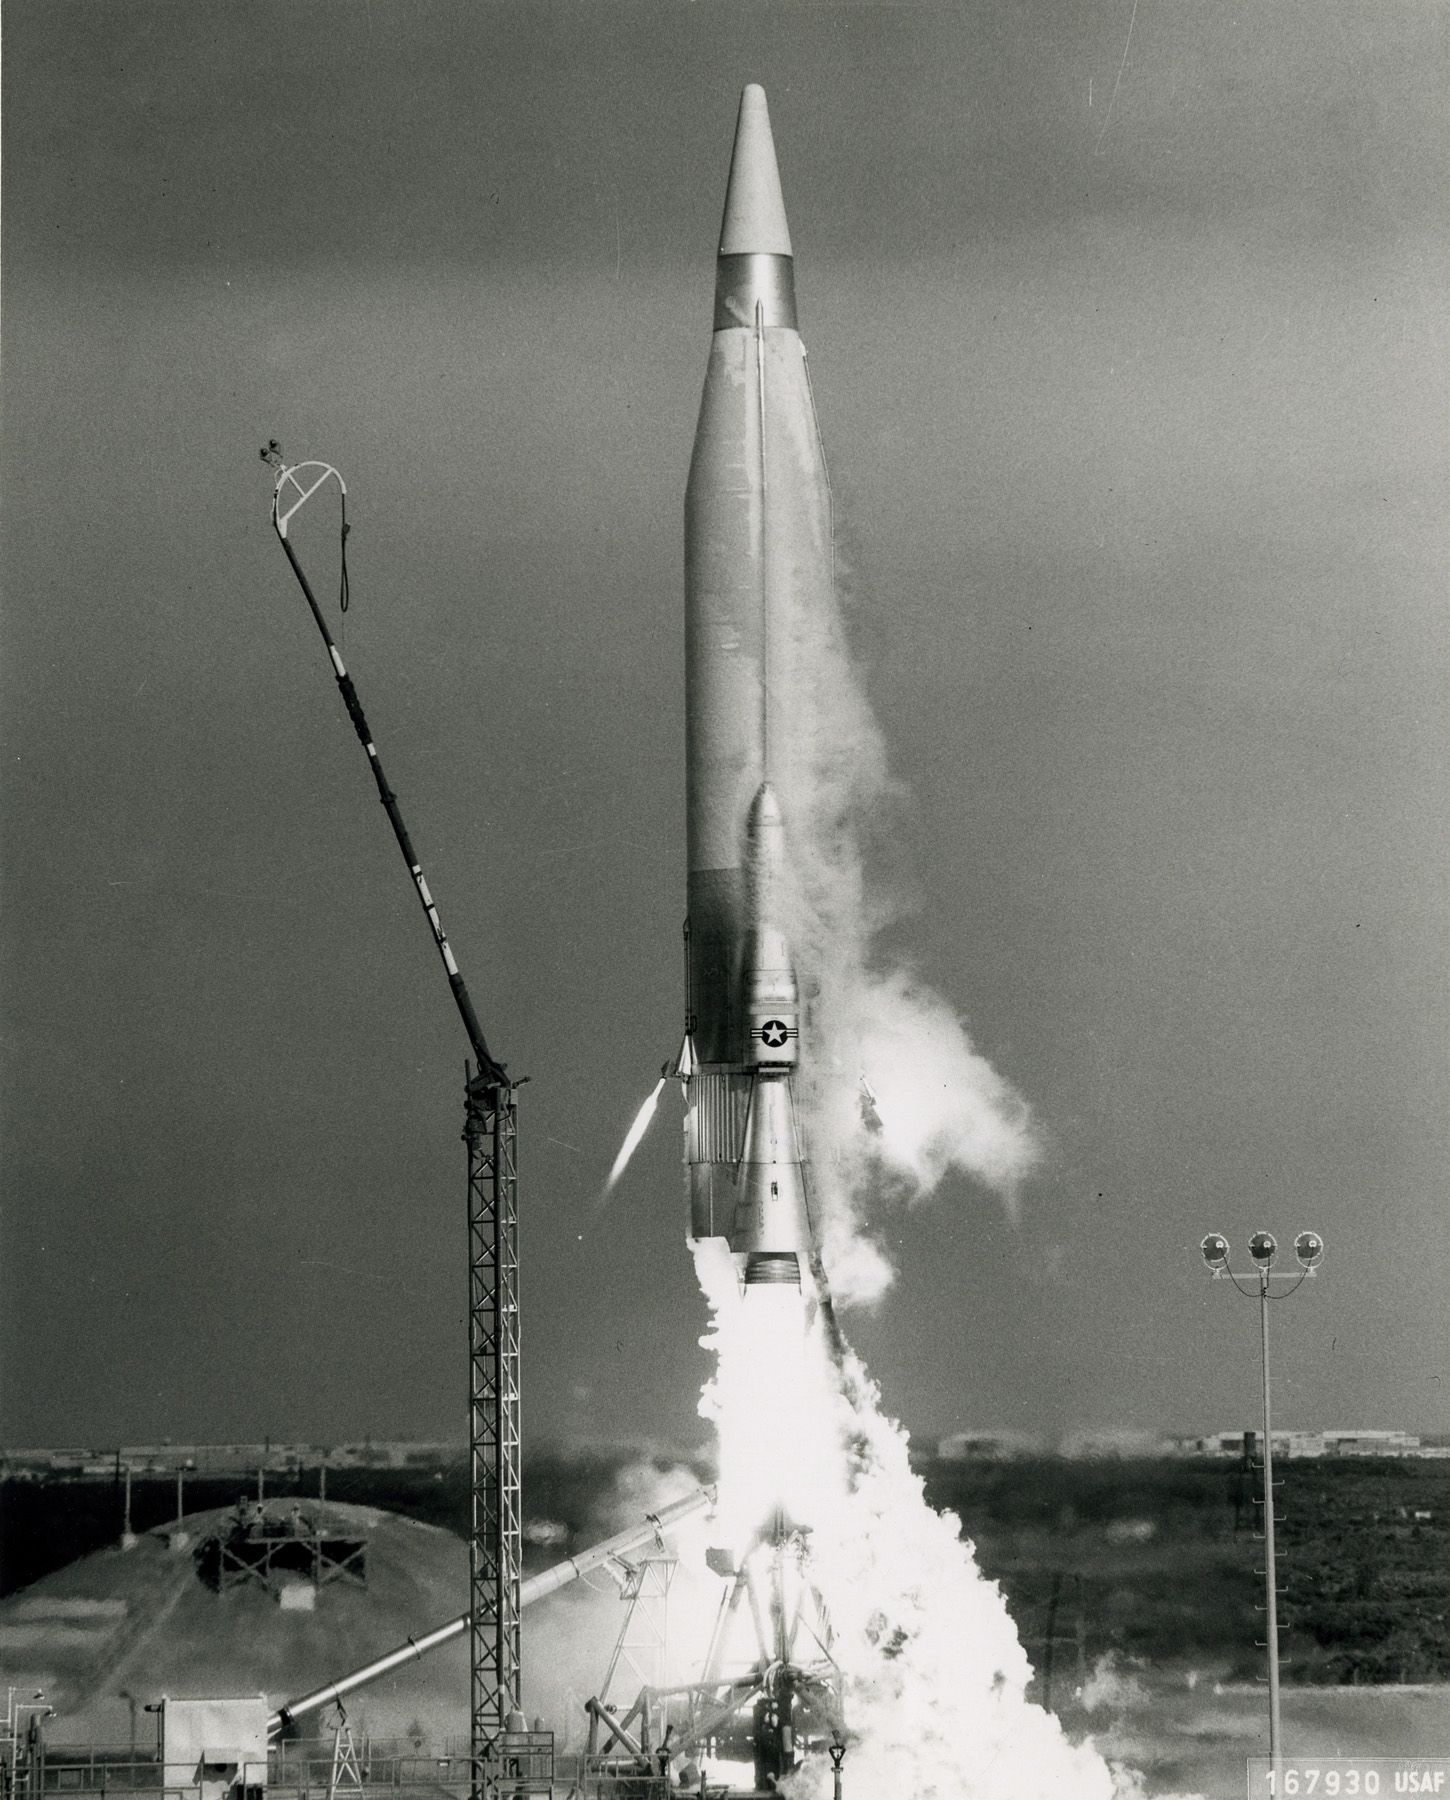 An early Atlas ICBM being launched c.1952(이미지 포함)